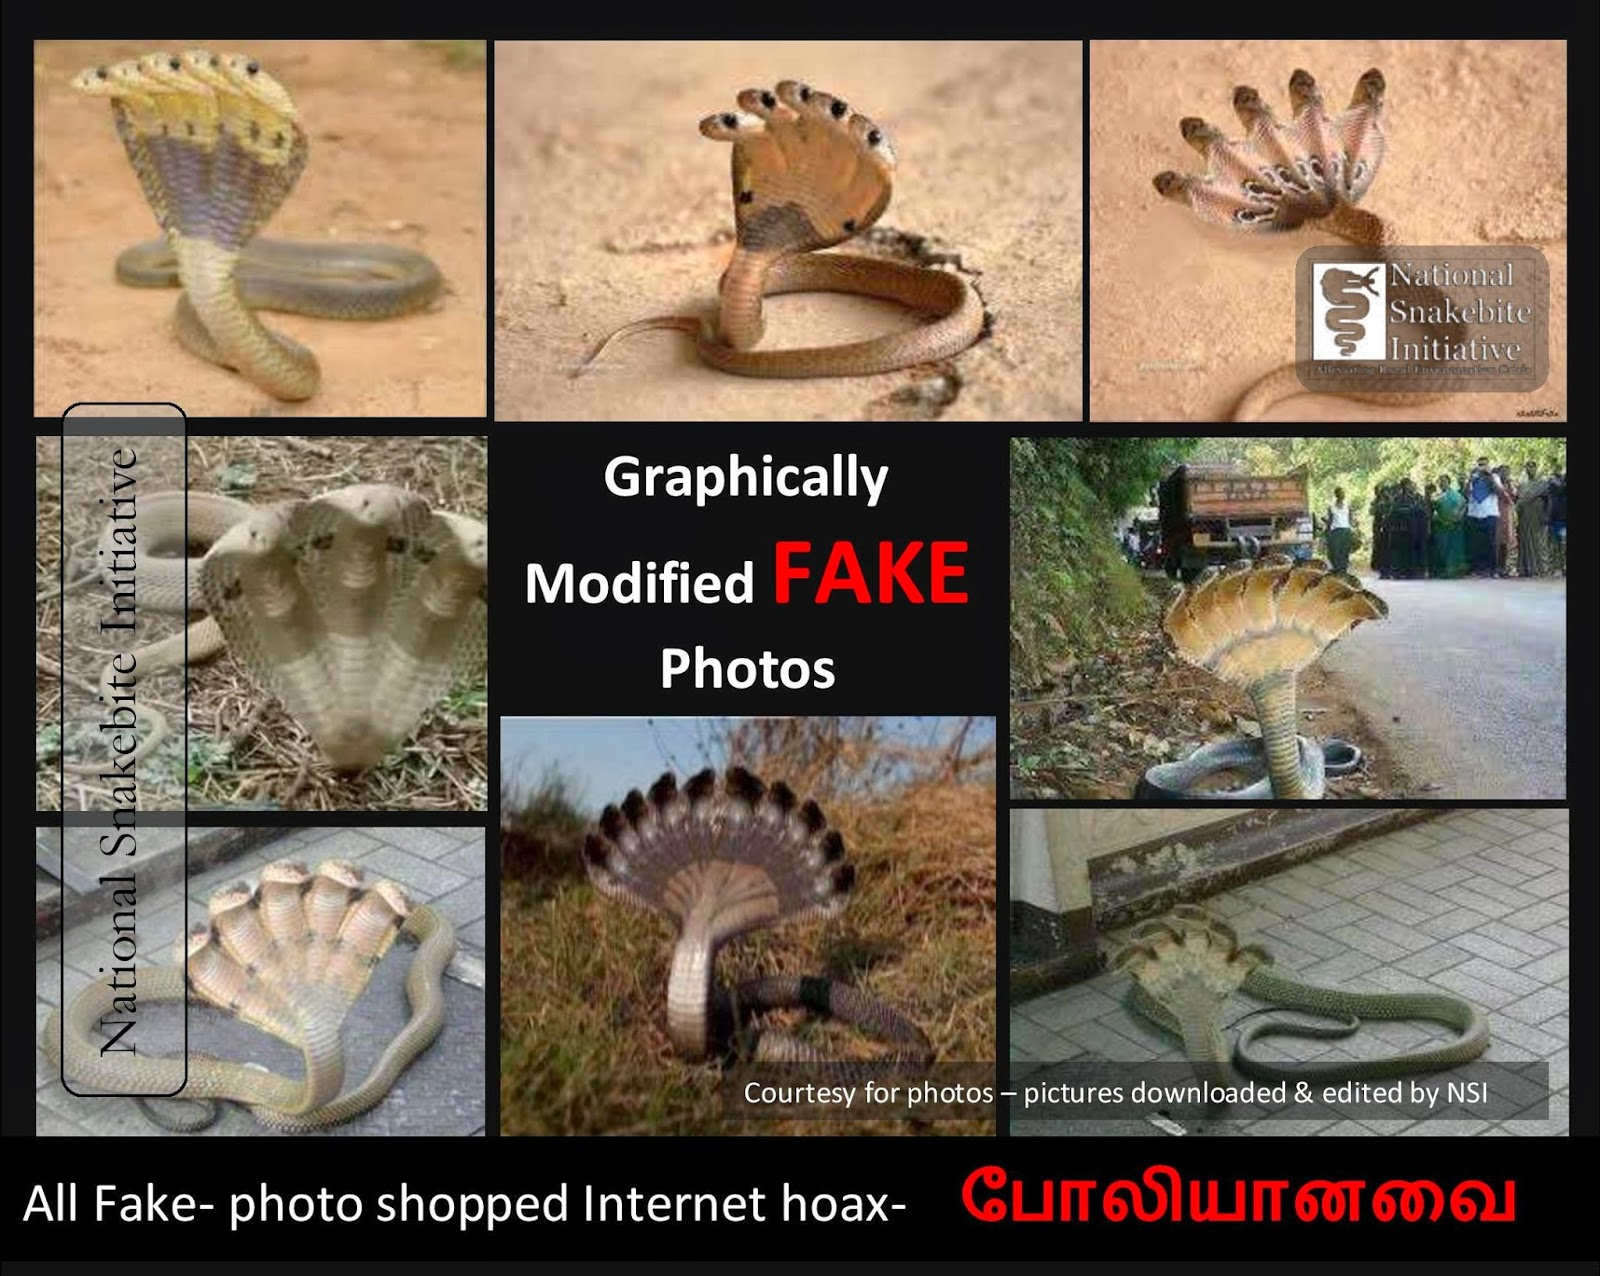 Myths on Snakes in India: Five Head Cobra - photo#19